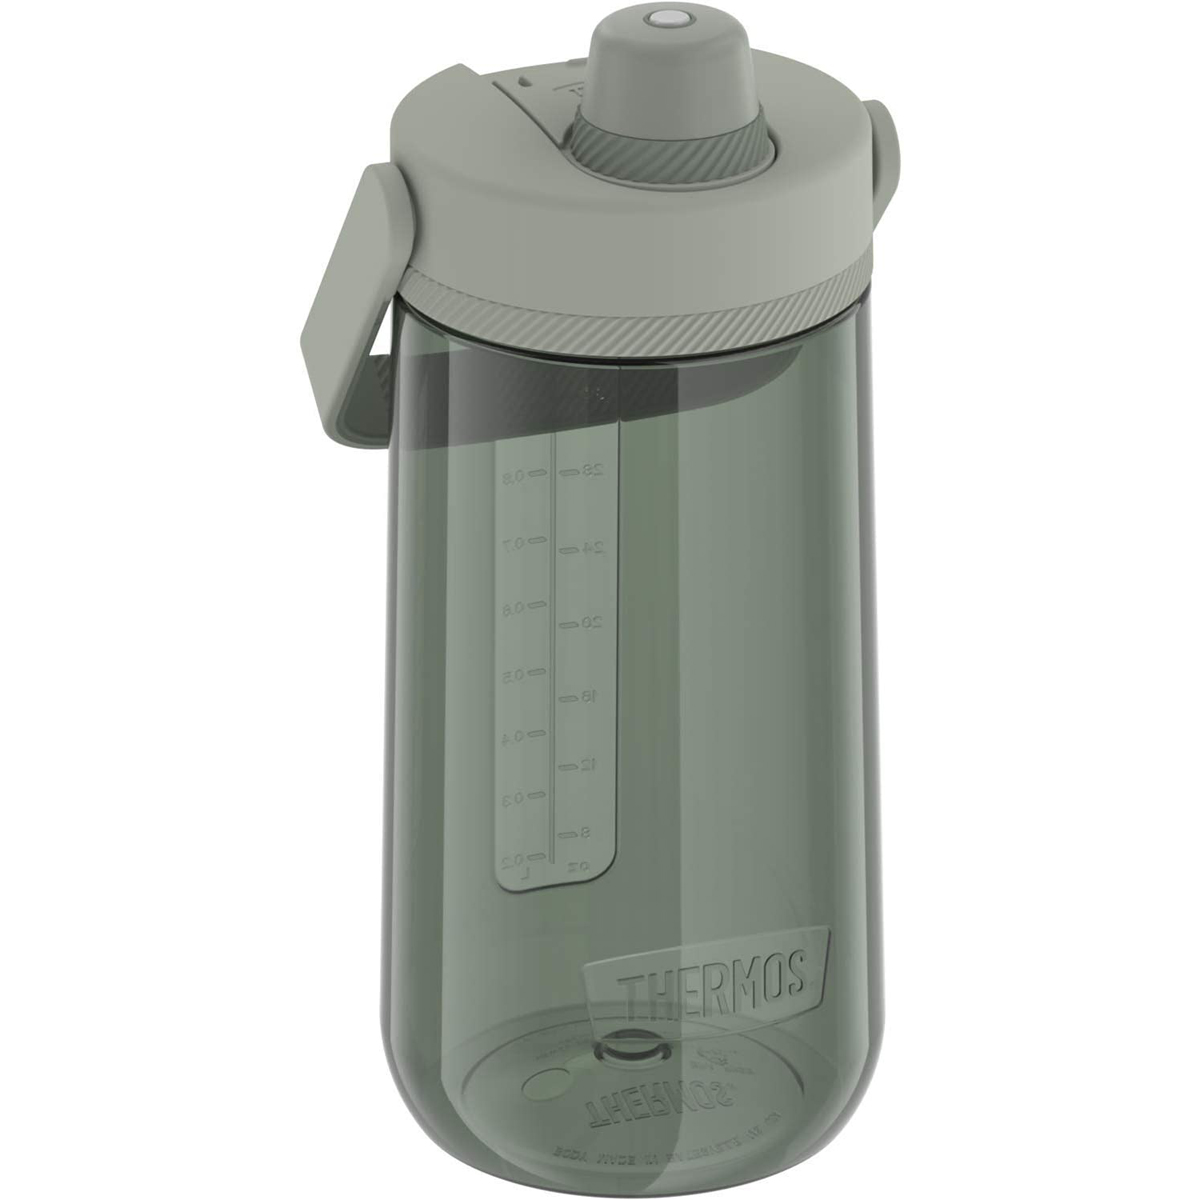 Thermos-40-oz-Guardian-Collection-Hard-Plastic-Hydration-Bottle-with-Spout thumbnail 13